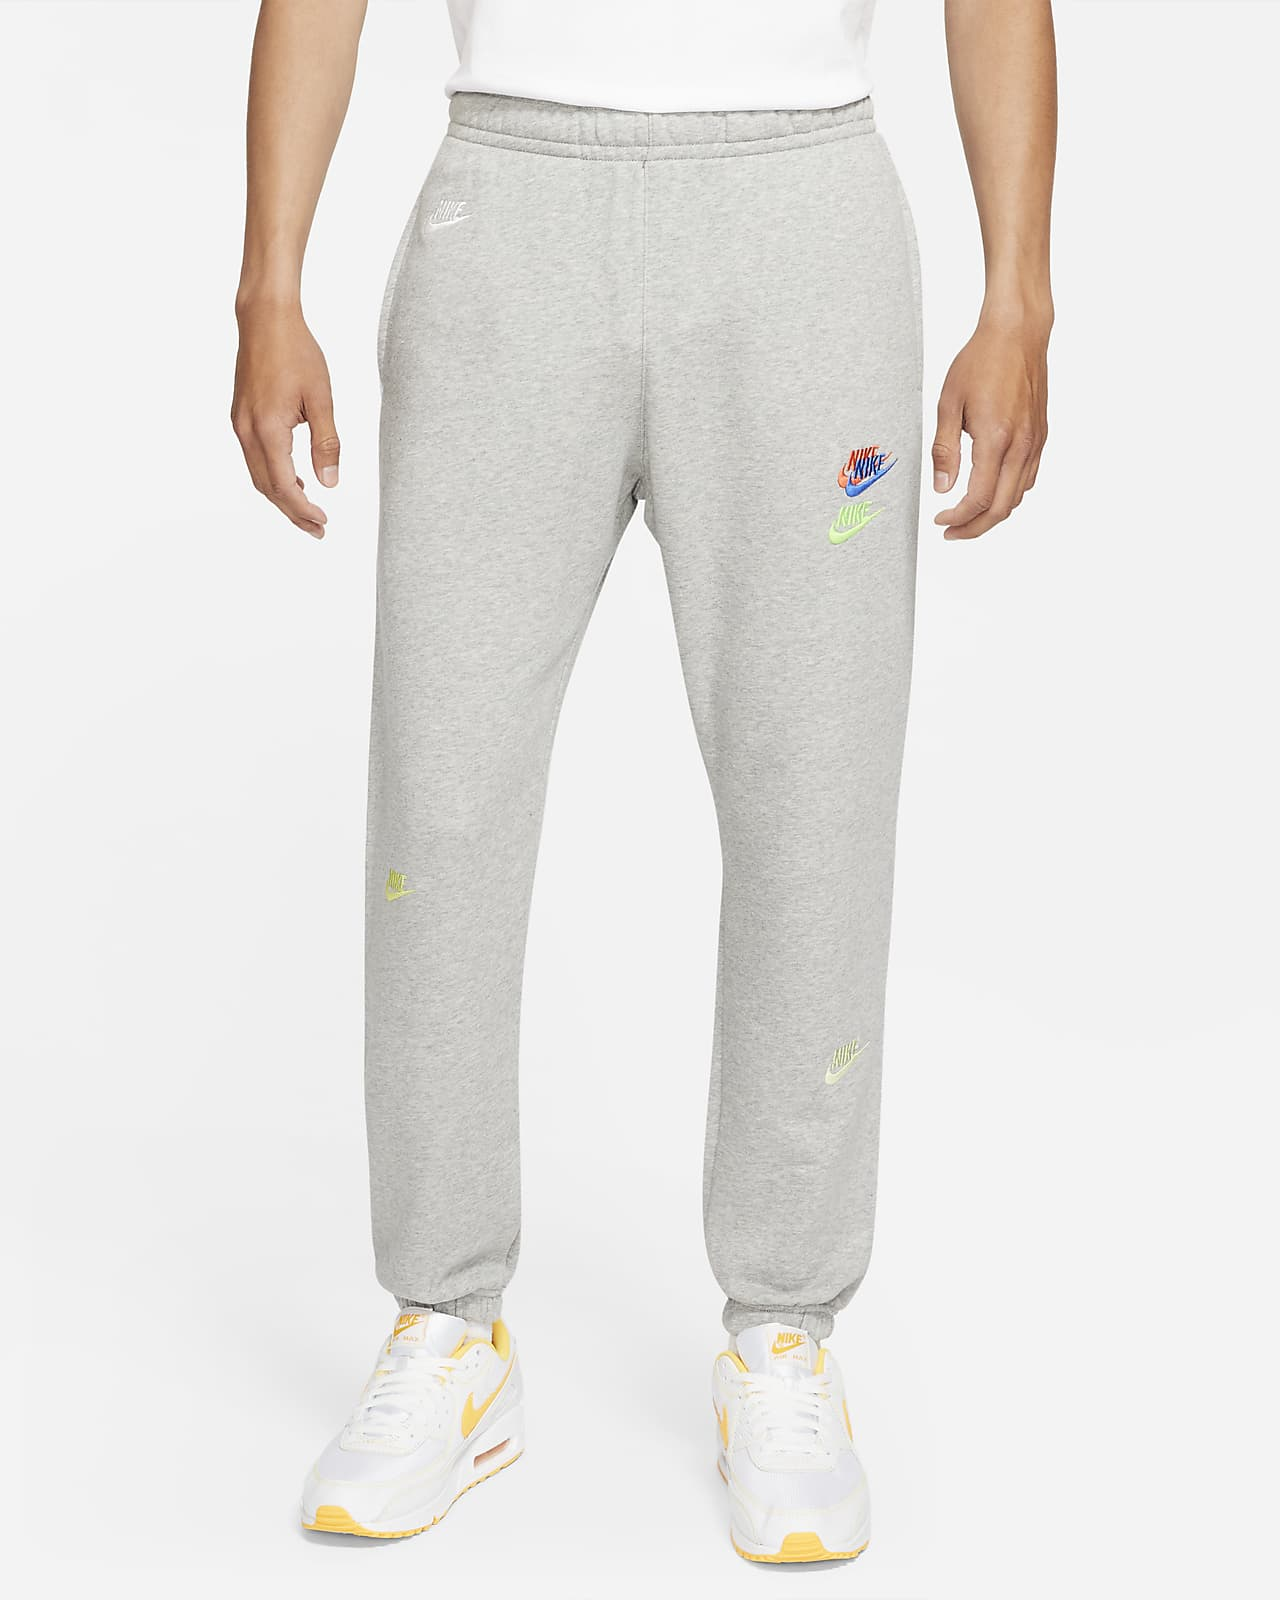 Nike Sportswear Essentials+ Men's French Terry Pants